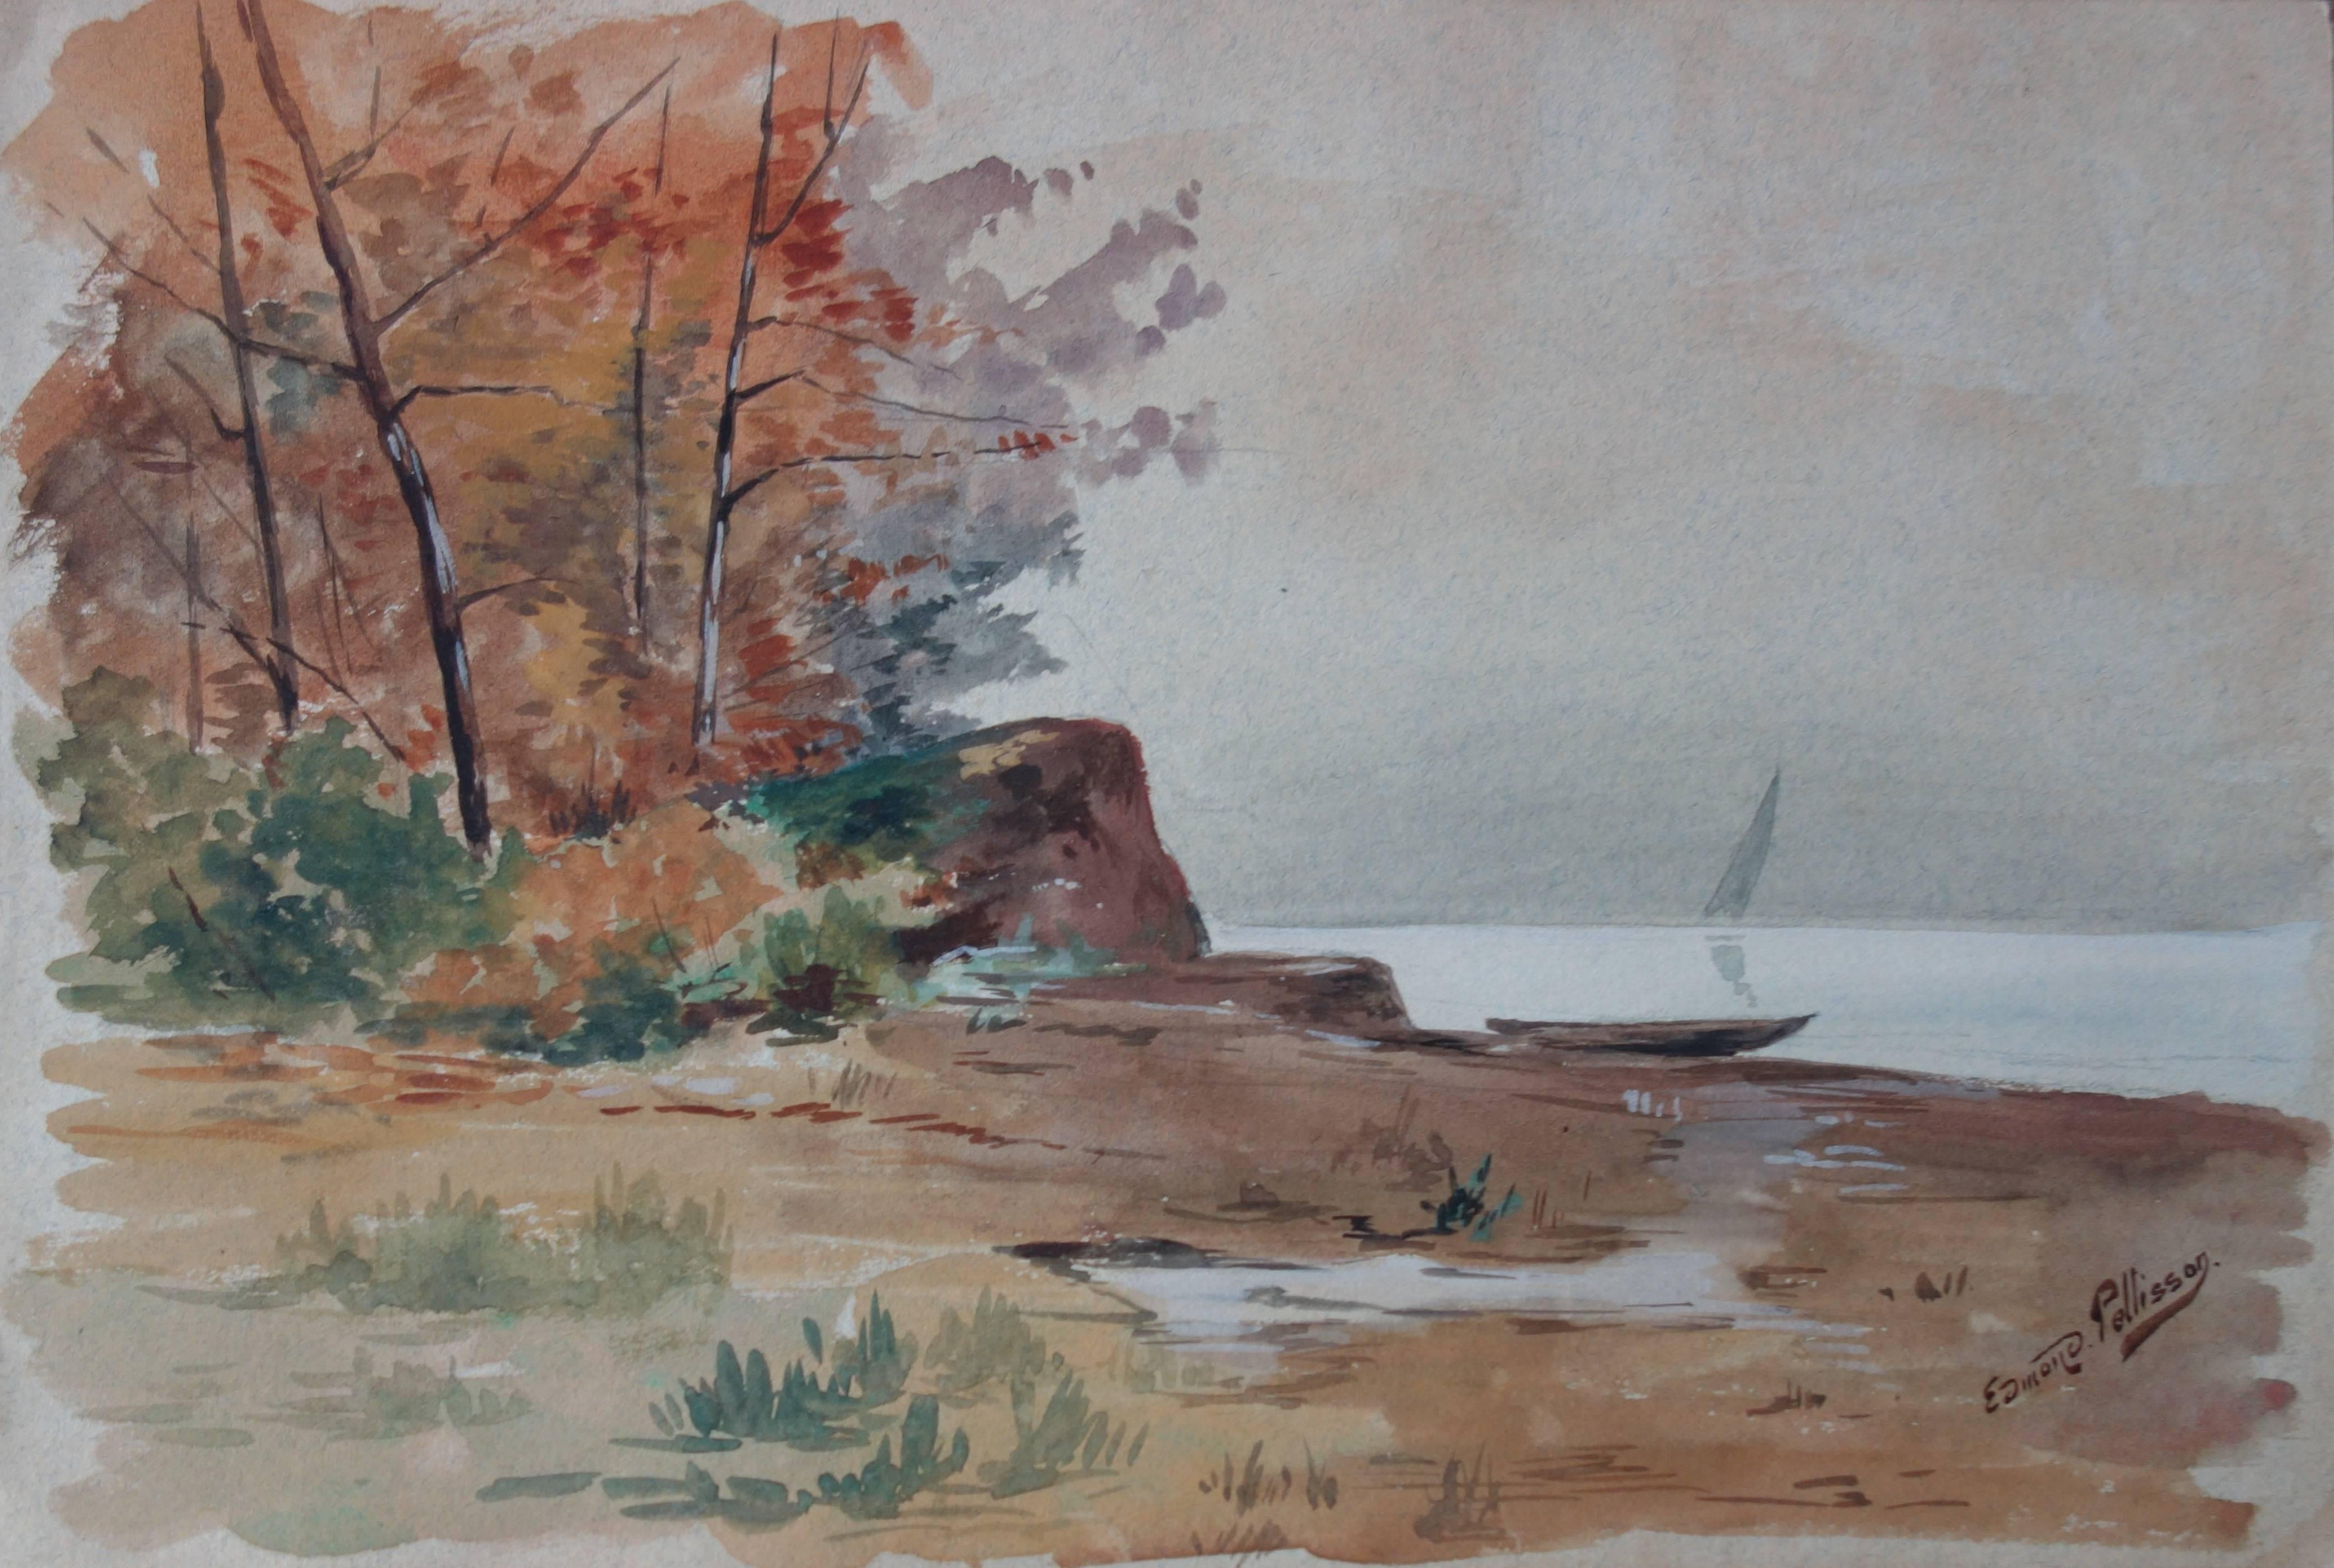 Last View of a Great Departure - Original whandsigned watercolor - c. 1899